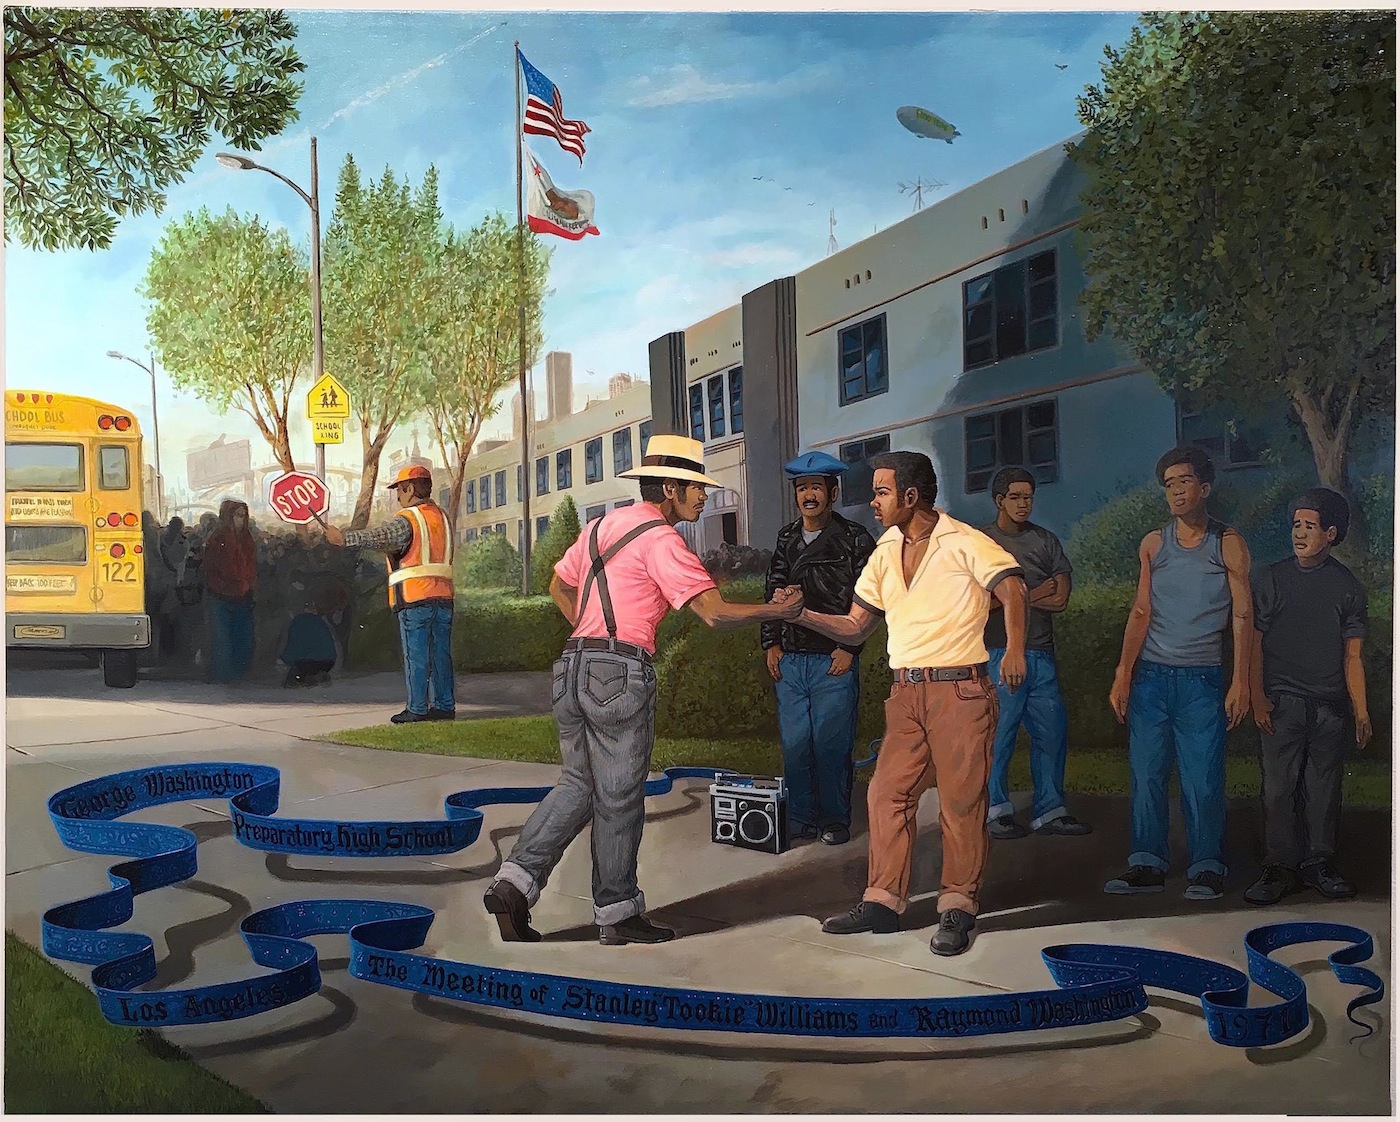 "Sandow Birk, ""The Founding of the Crips (George Washington Preparatory High School - Los Angeles - The Meeting of Stanley 'Tookie' Williams and Raymond Washington - 1971)"" (2015), Acrylic on Canvas, 43 x 54 in. (via cjamesgallery.com)"